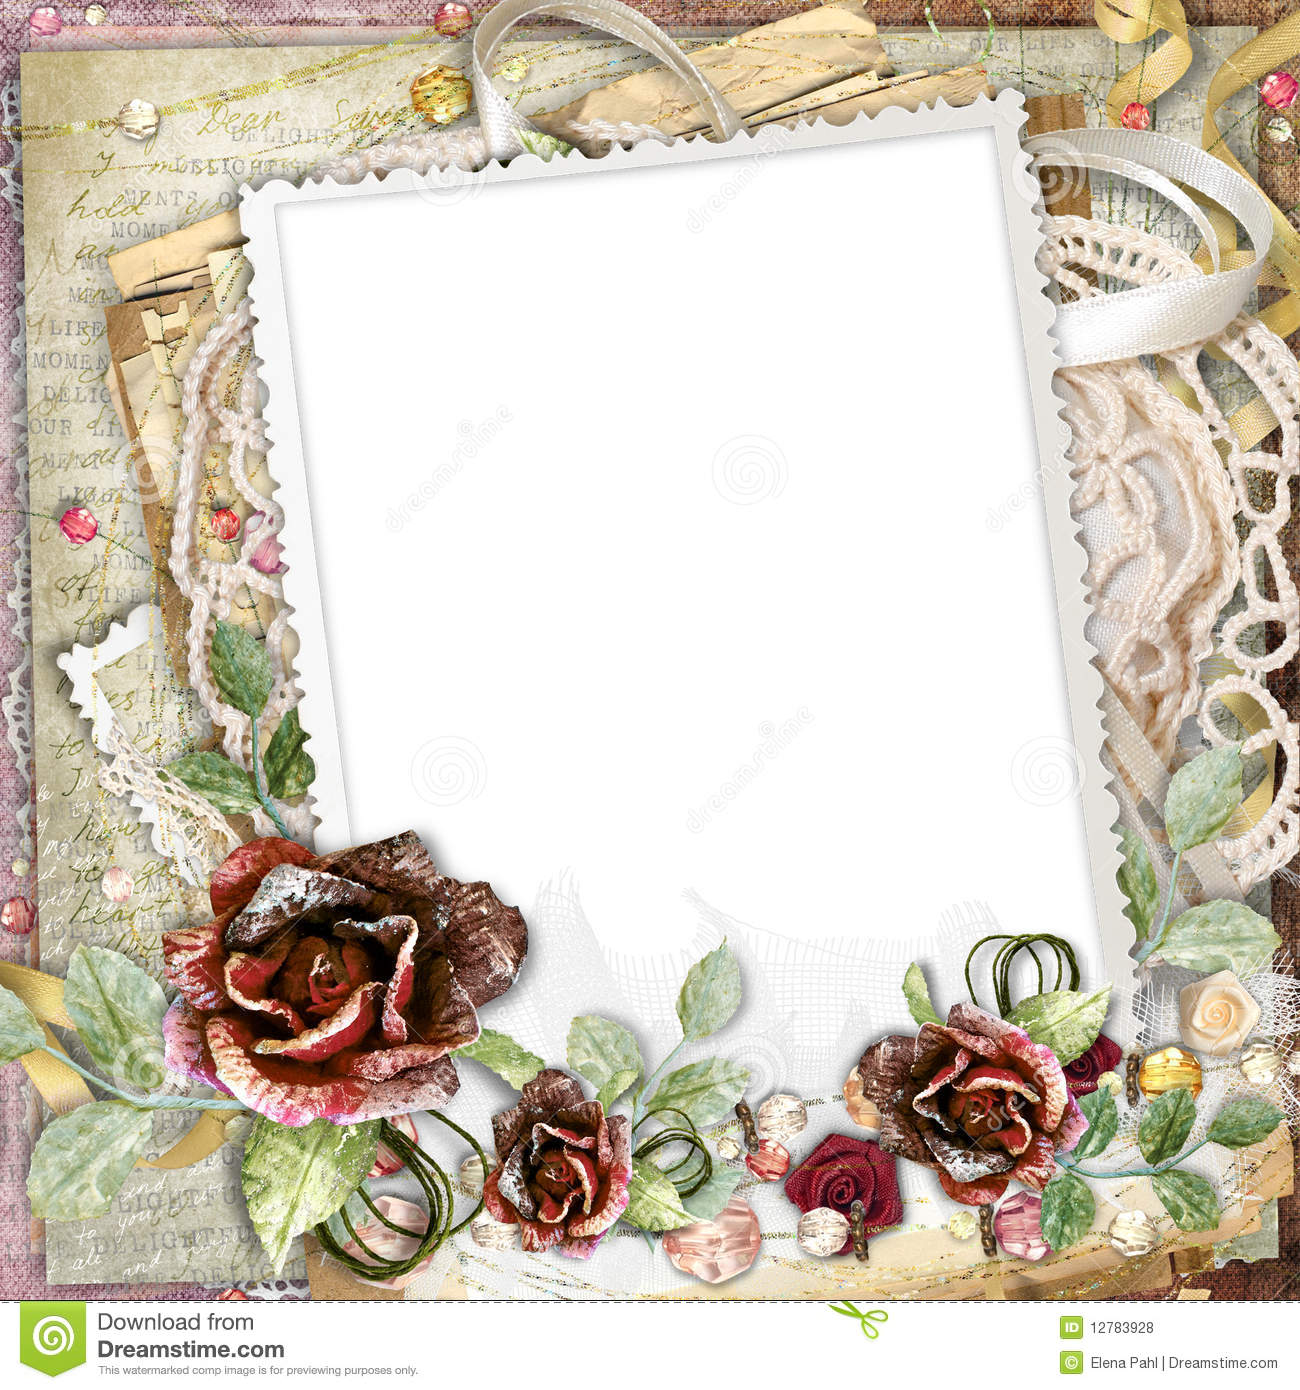 Beauty In Frame: Beautiful Frame With Flowers Royalty Free Stock Photos